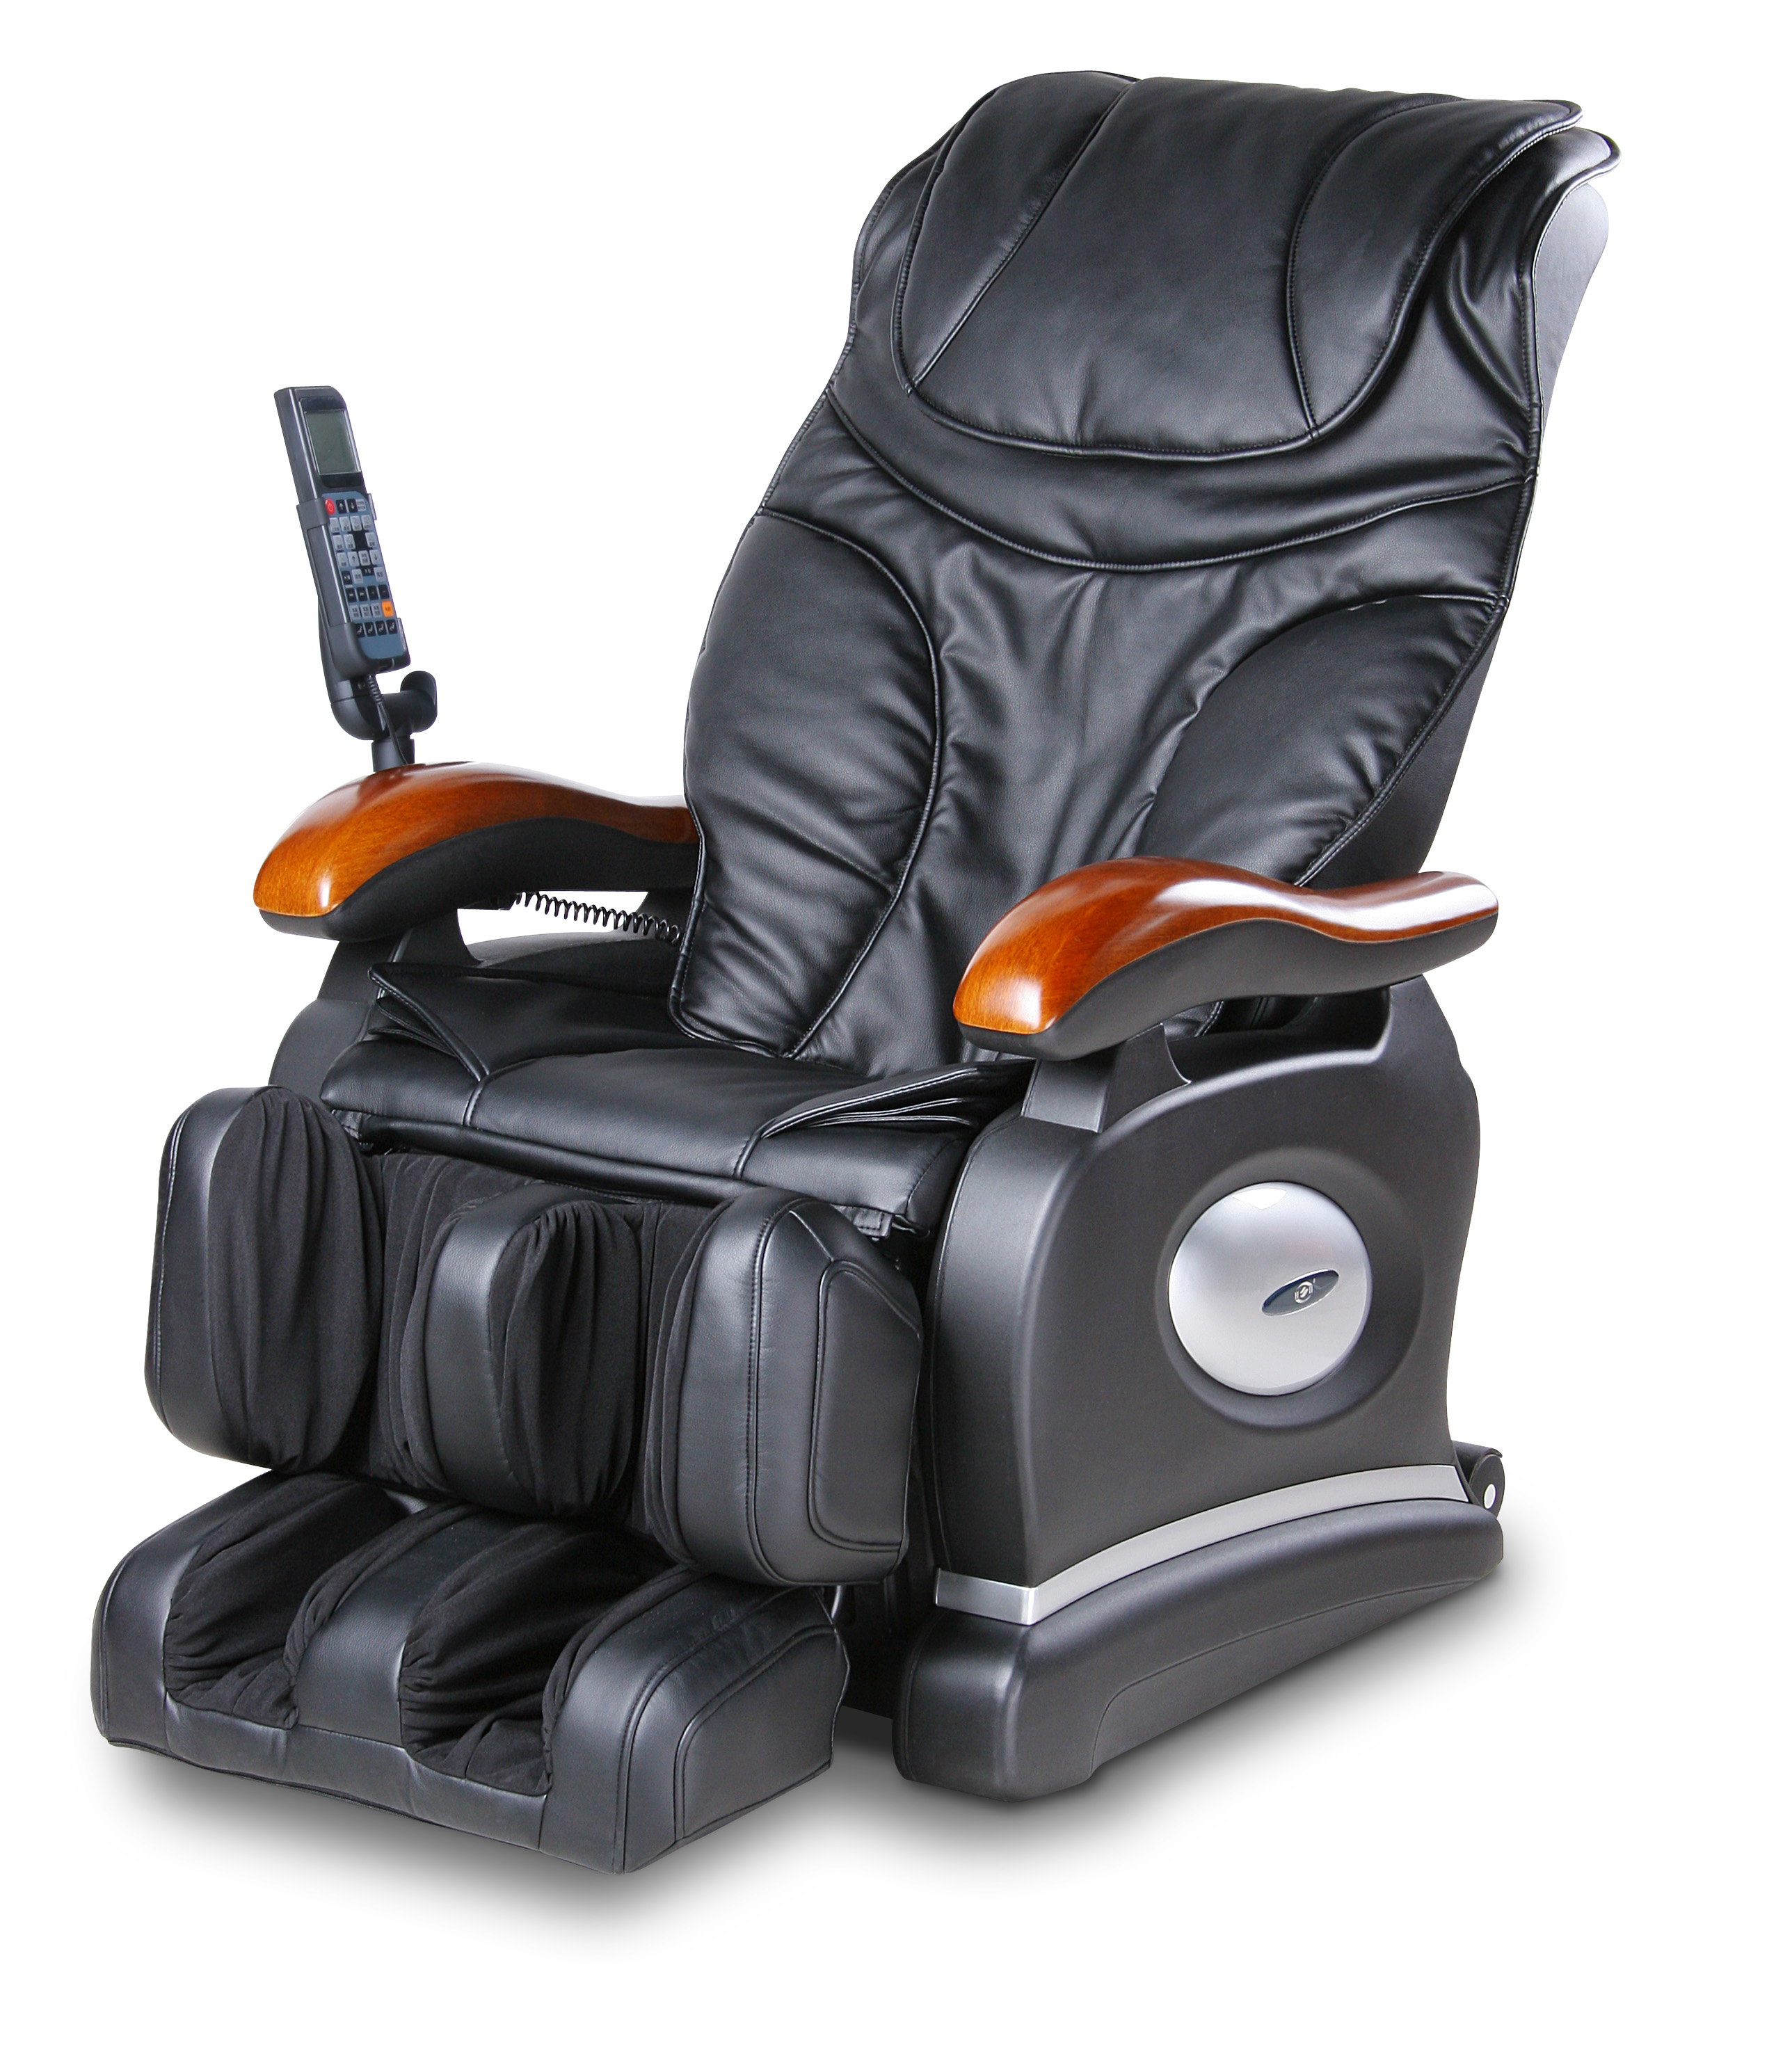 full chairs with recliner size of recline vintage rocking cost osaki south office recliners reclining on pu prices leather massage africa heat near chair sale zero s technology heated armchair vibrating gravity back canada power homedics